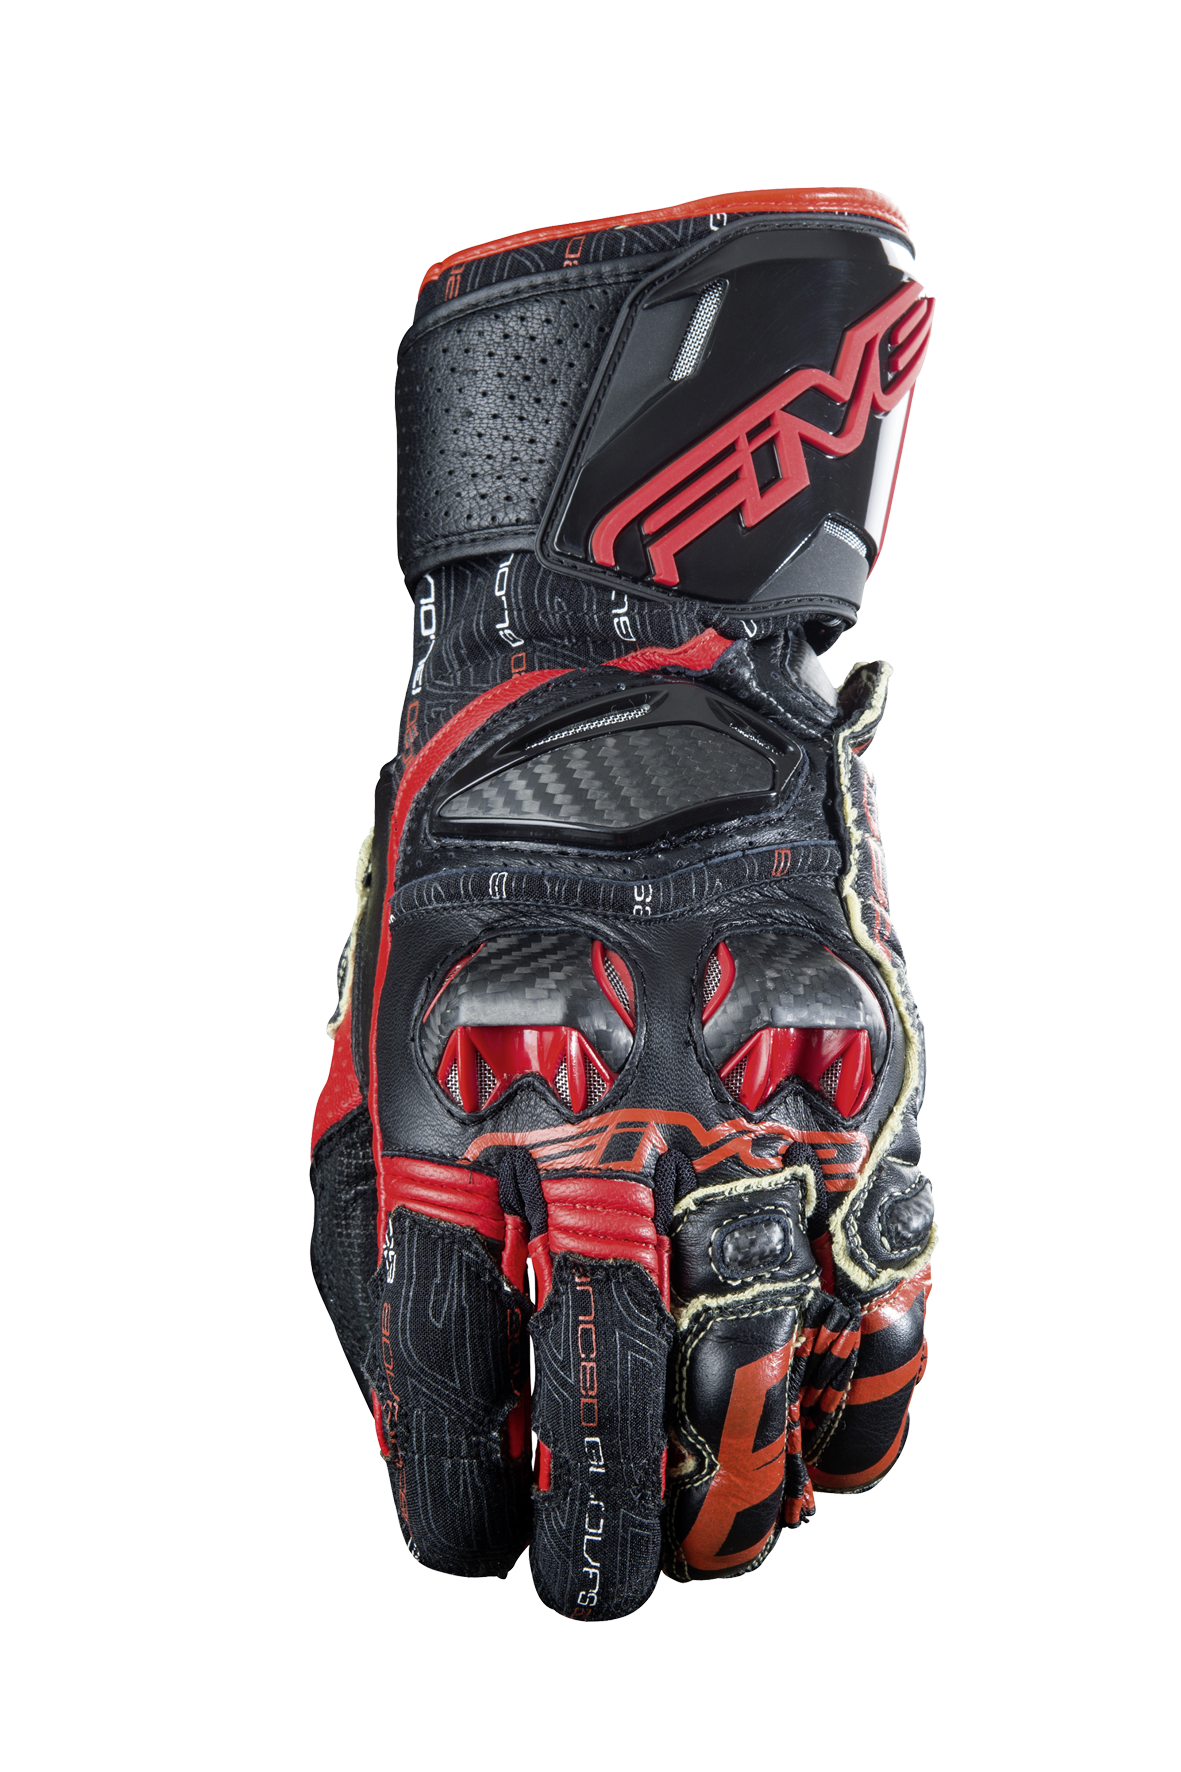 FIVE gloves now on sale in the UK